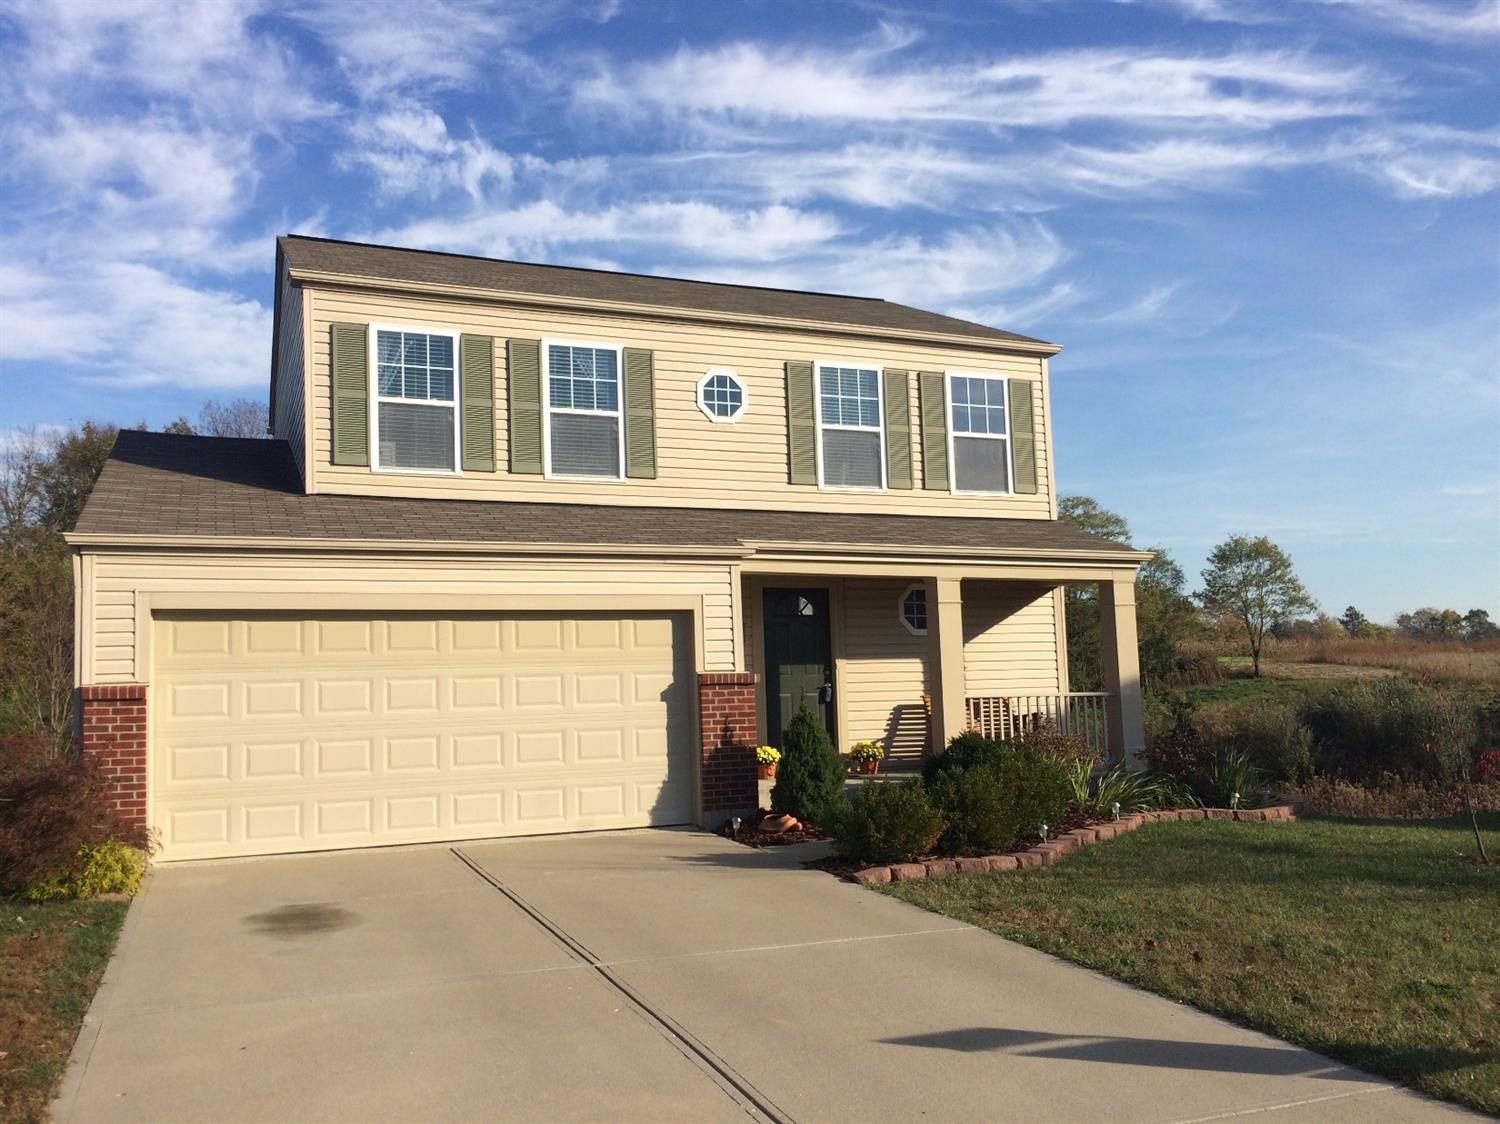 Photo 1 for 620 Makayla Ct Burlington, KY 41005